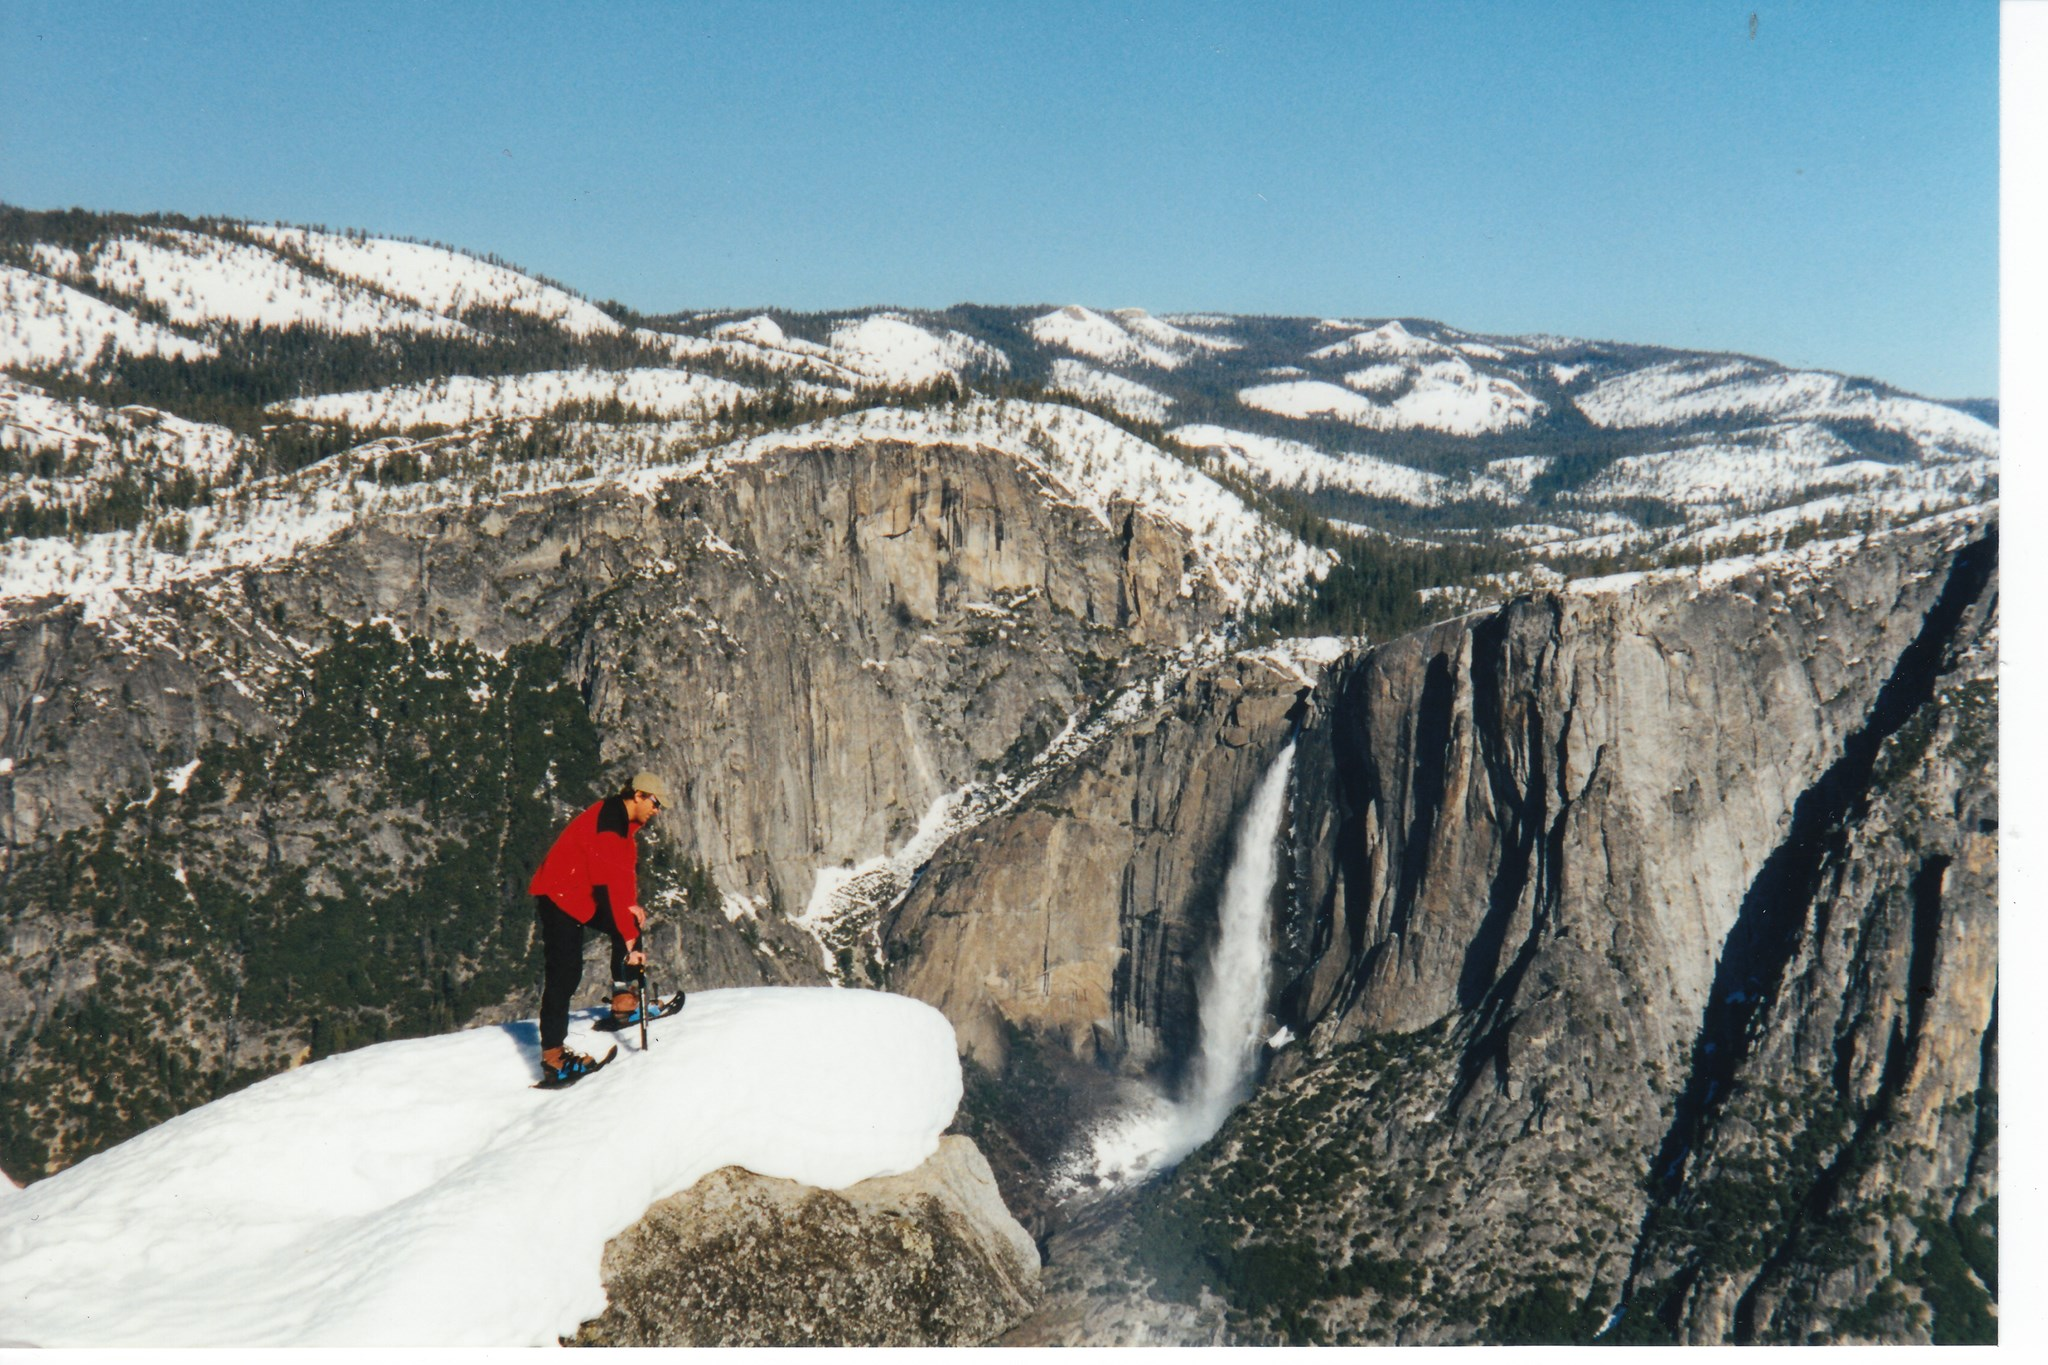 At Glacier Pt looking over Yosemite Falls, March 1998